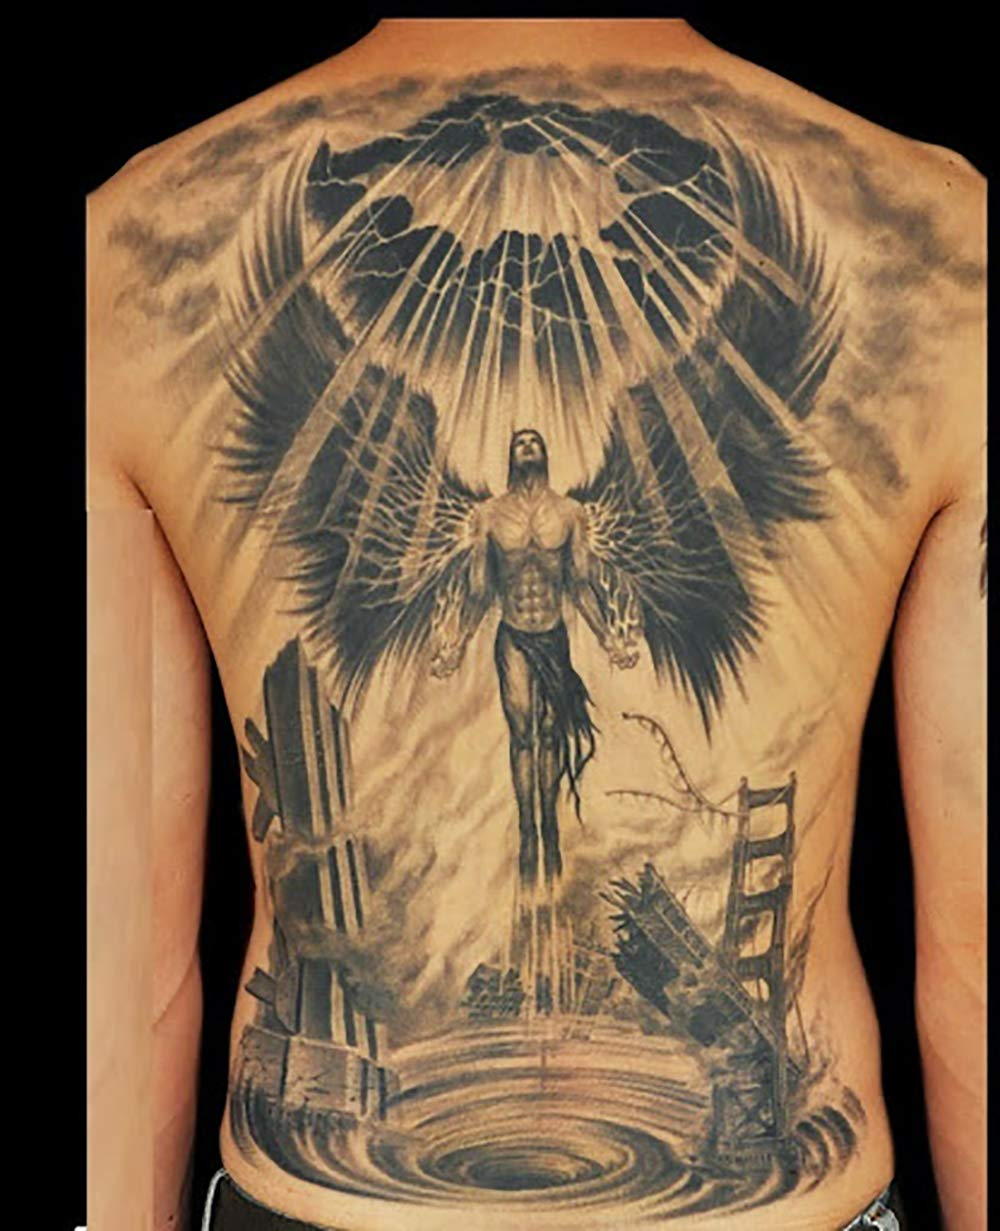 Amazon Com 2 Sheets Full Back Temporary Tattoos For Men Women Doomsday Angel Fashion Religion Body Art Jesus Christ Holy Light Sticker Sexy Fake Tattoo Special Design Waterproof Black Tattoos Beauty Tattoos of jesus mostly show the face of the christ. 2 sheets full back temporary tattoos for men women doomsday angel fashion religion body art jesus christ holy light sticker sexy fake tattoo special